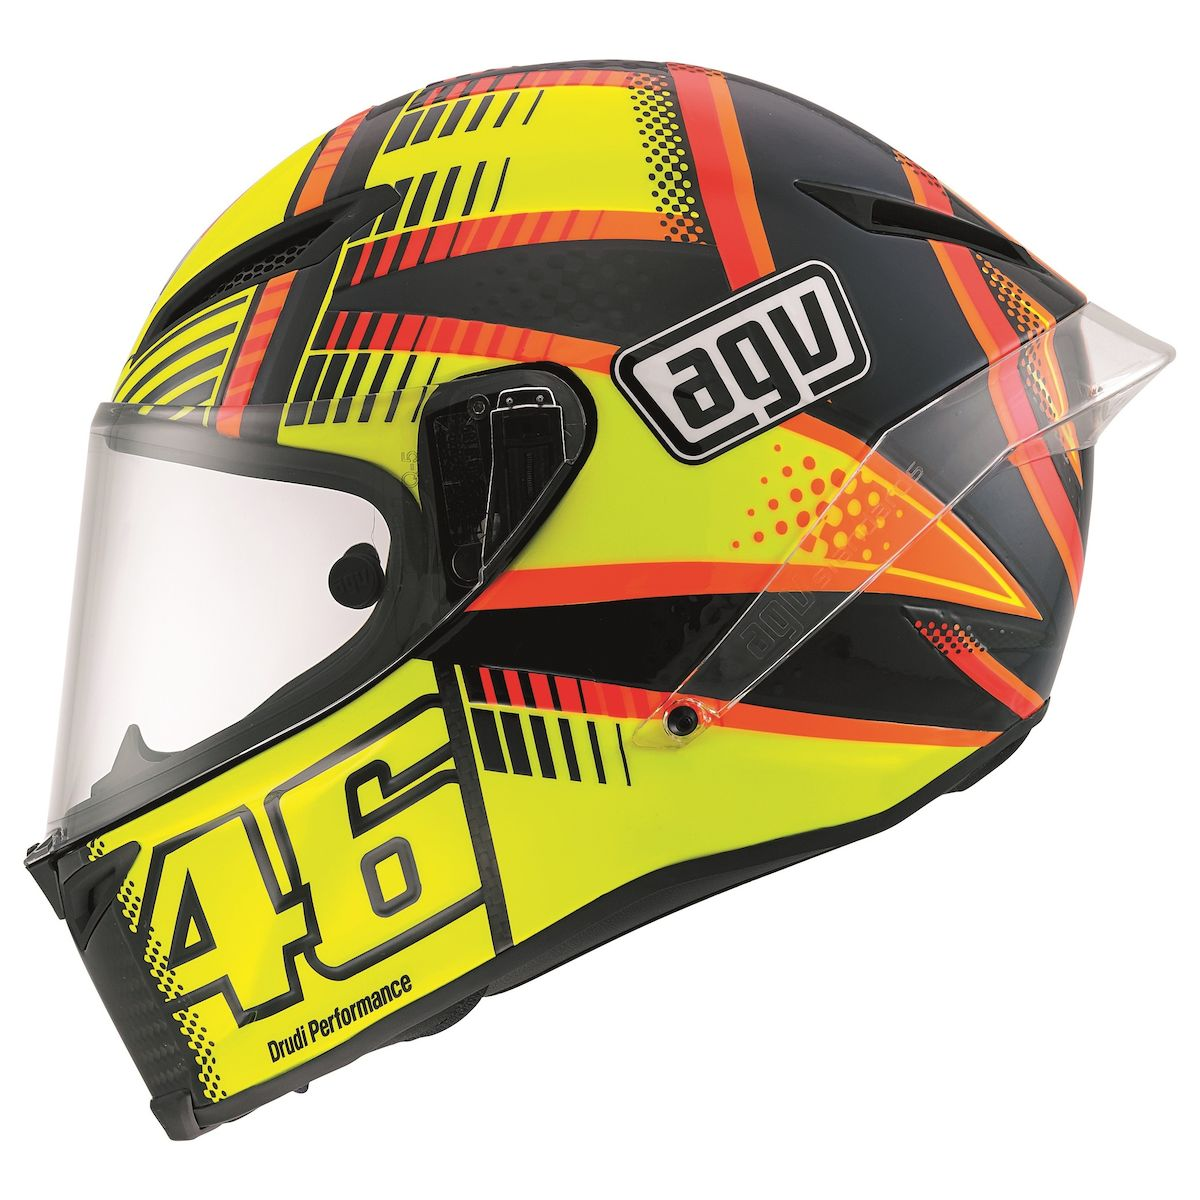 AGV Corsa Soleluna Qatar Motorcycle Helmet  Yellow/Black/Orange